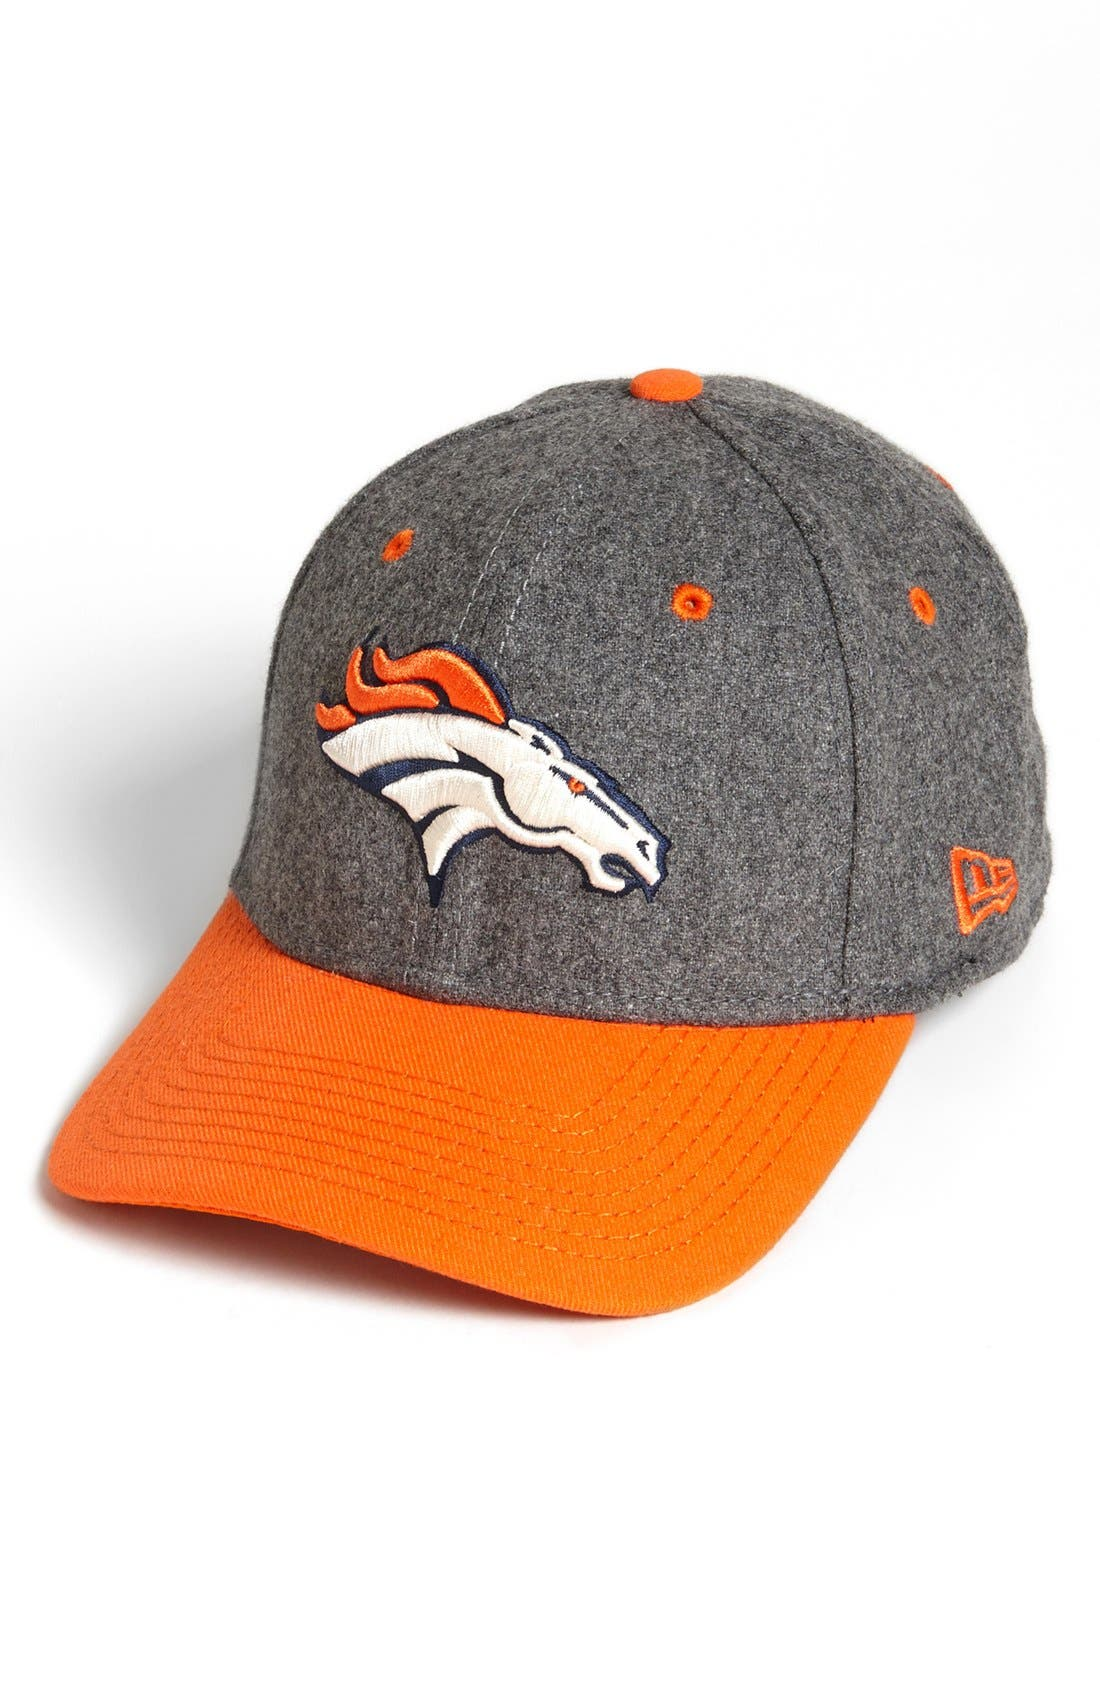 Alternate Image 1 Selected - New Era Cap 'Meltop - Denver Broncos' Fitted Baseball Cap